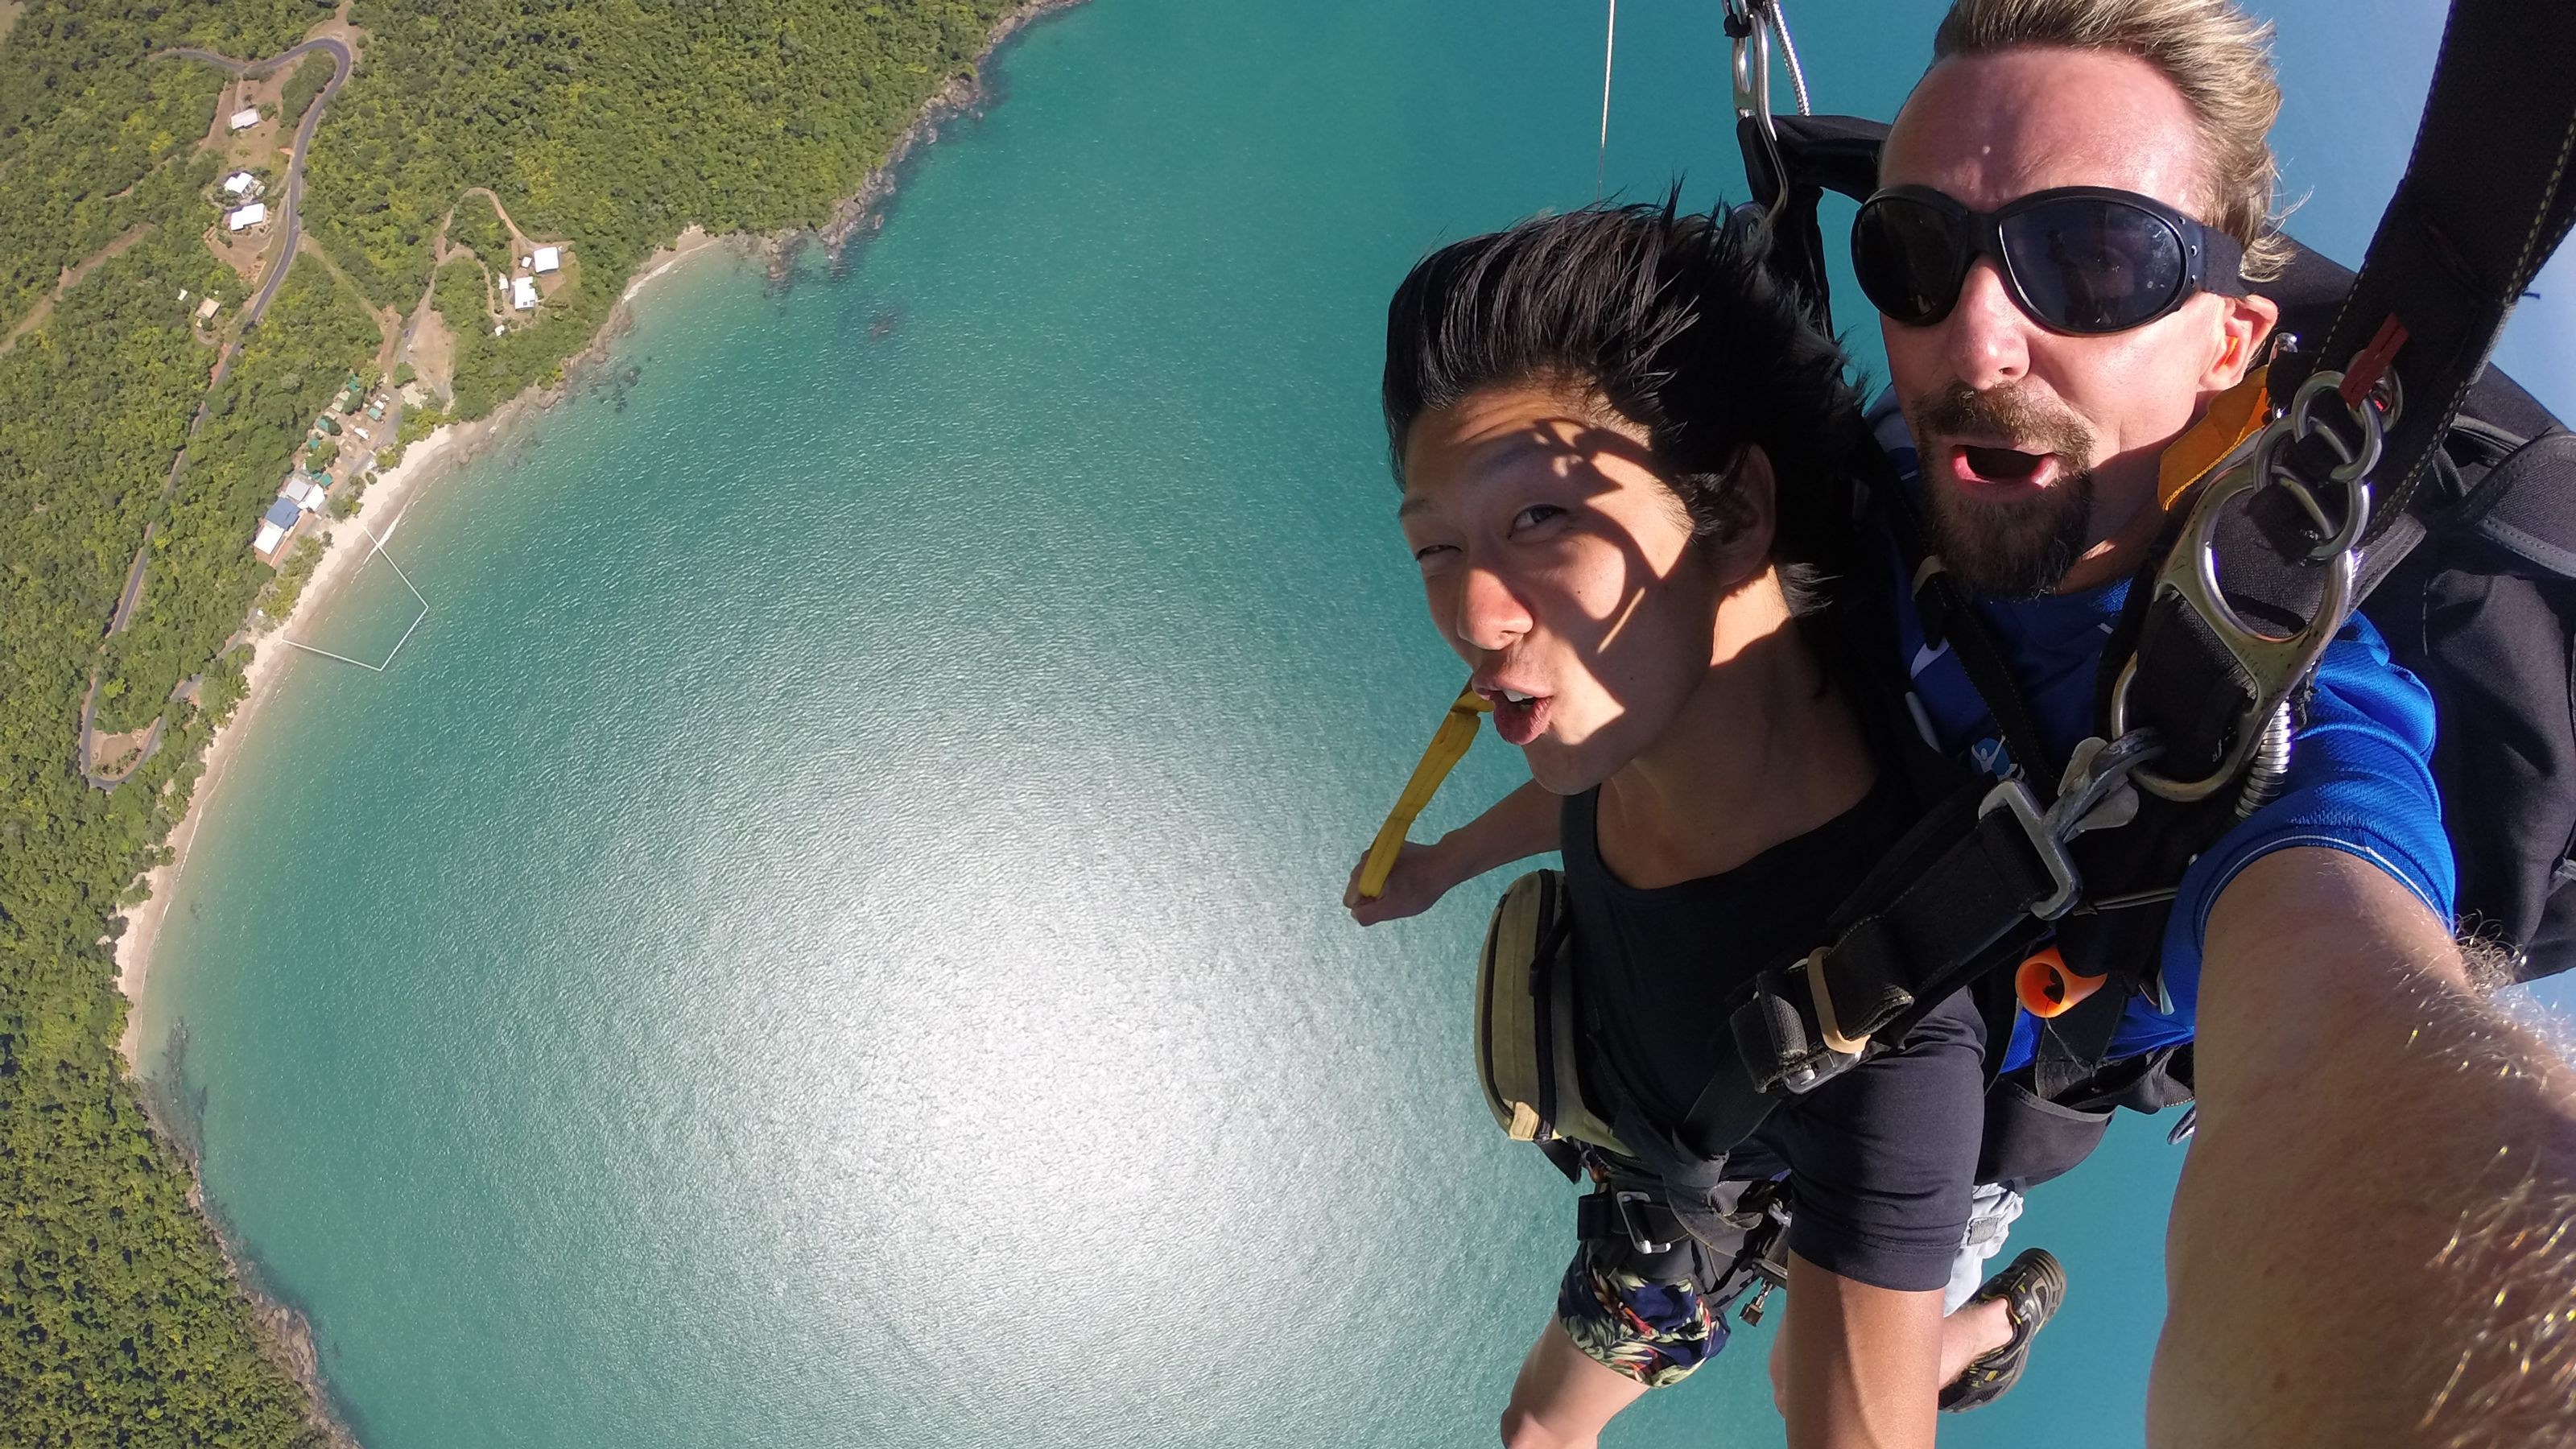 Girl fastened to professional Skydiver free falling in the Tandem Skydive in Cairns Australia